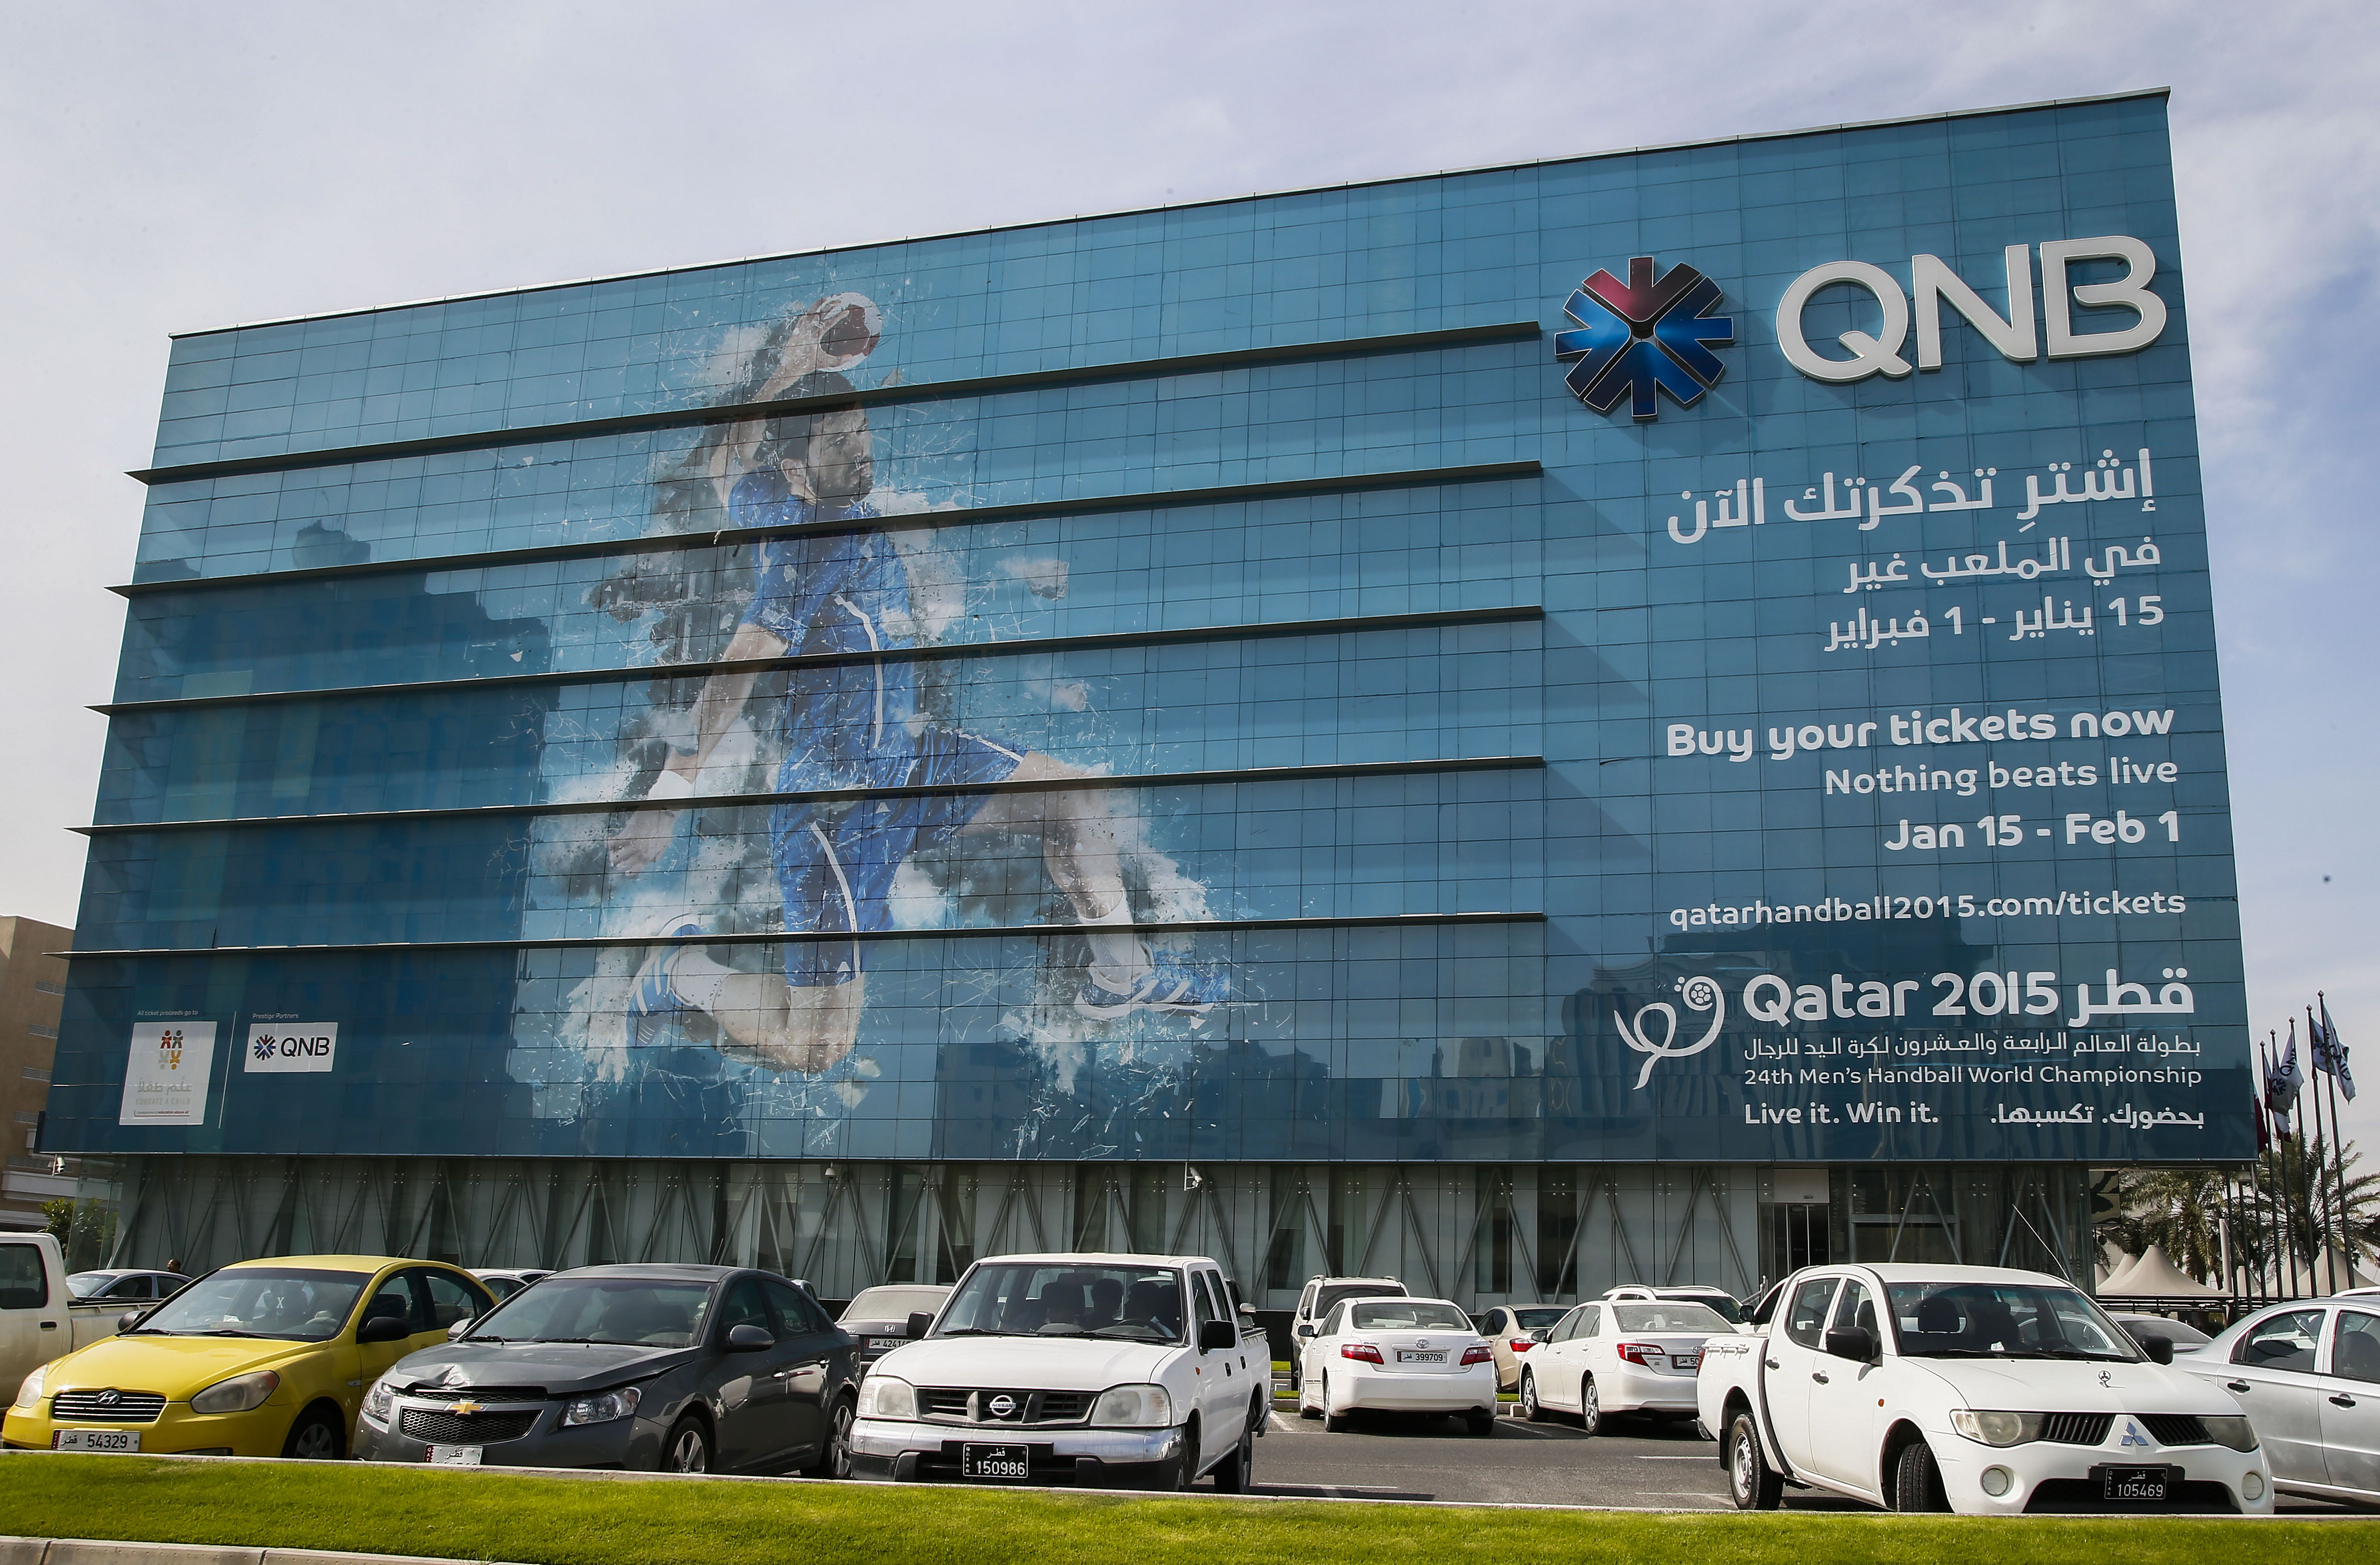 epa04558258 A promotion for the men's Handball World Championship 2015 covers the Qatar National Bank (QNB) Corperate Head Office in Doha, Qatar, 13 January 2015. The Qatar 2015 men's Handball World Championship 2015 takes place in Qatar from 15 January to 01 February. Qatar 2015 via epa/NIC BOTHMA Editorial Use only/No Commercial sales